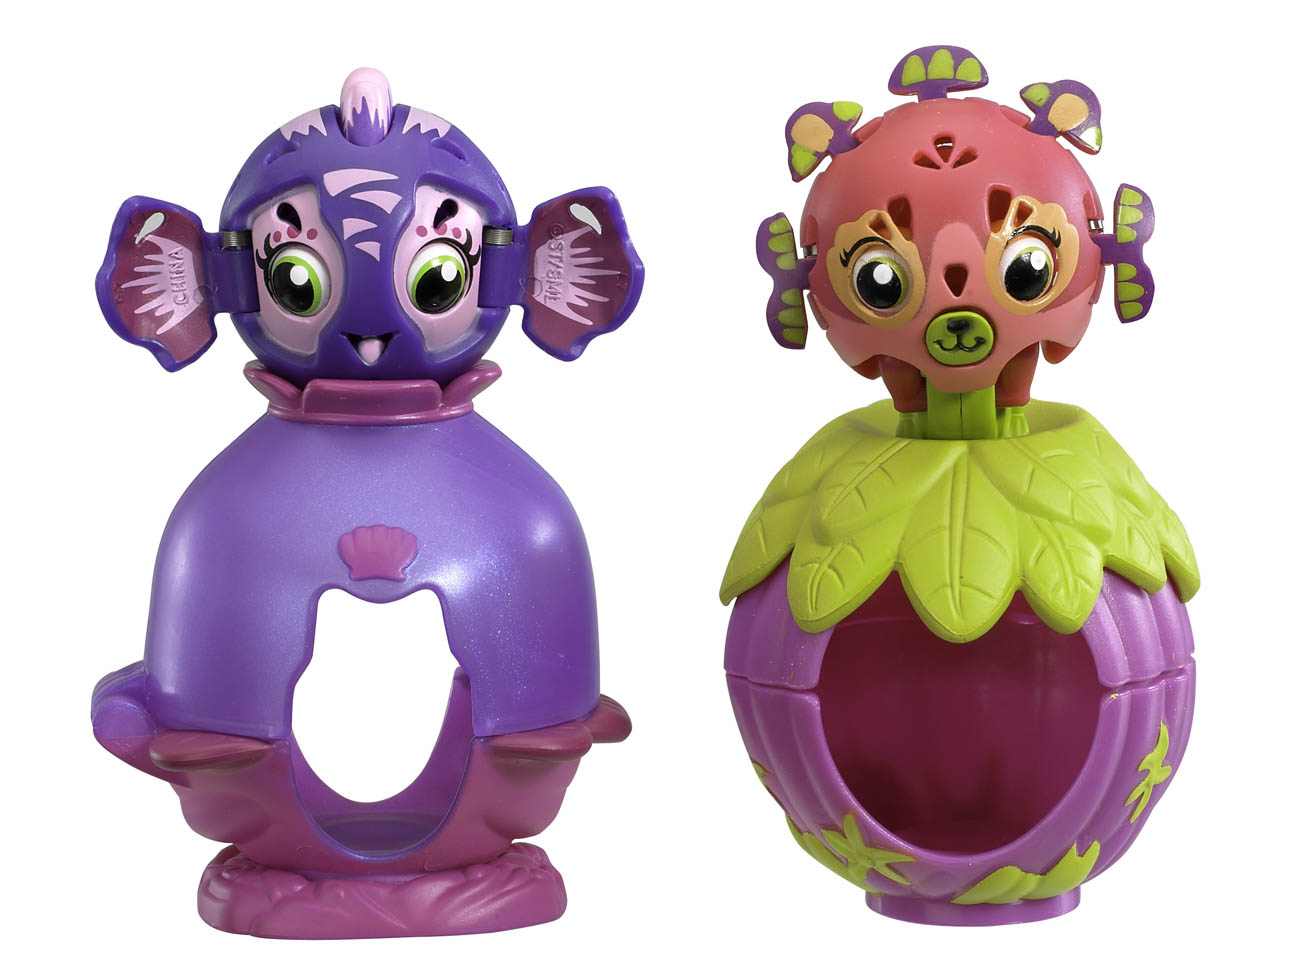 Zoobles Review – Brand new and super cute! New craze for 3+ girls?